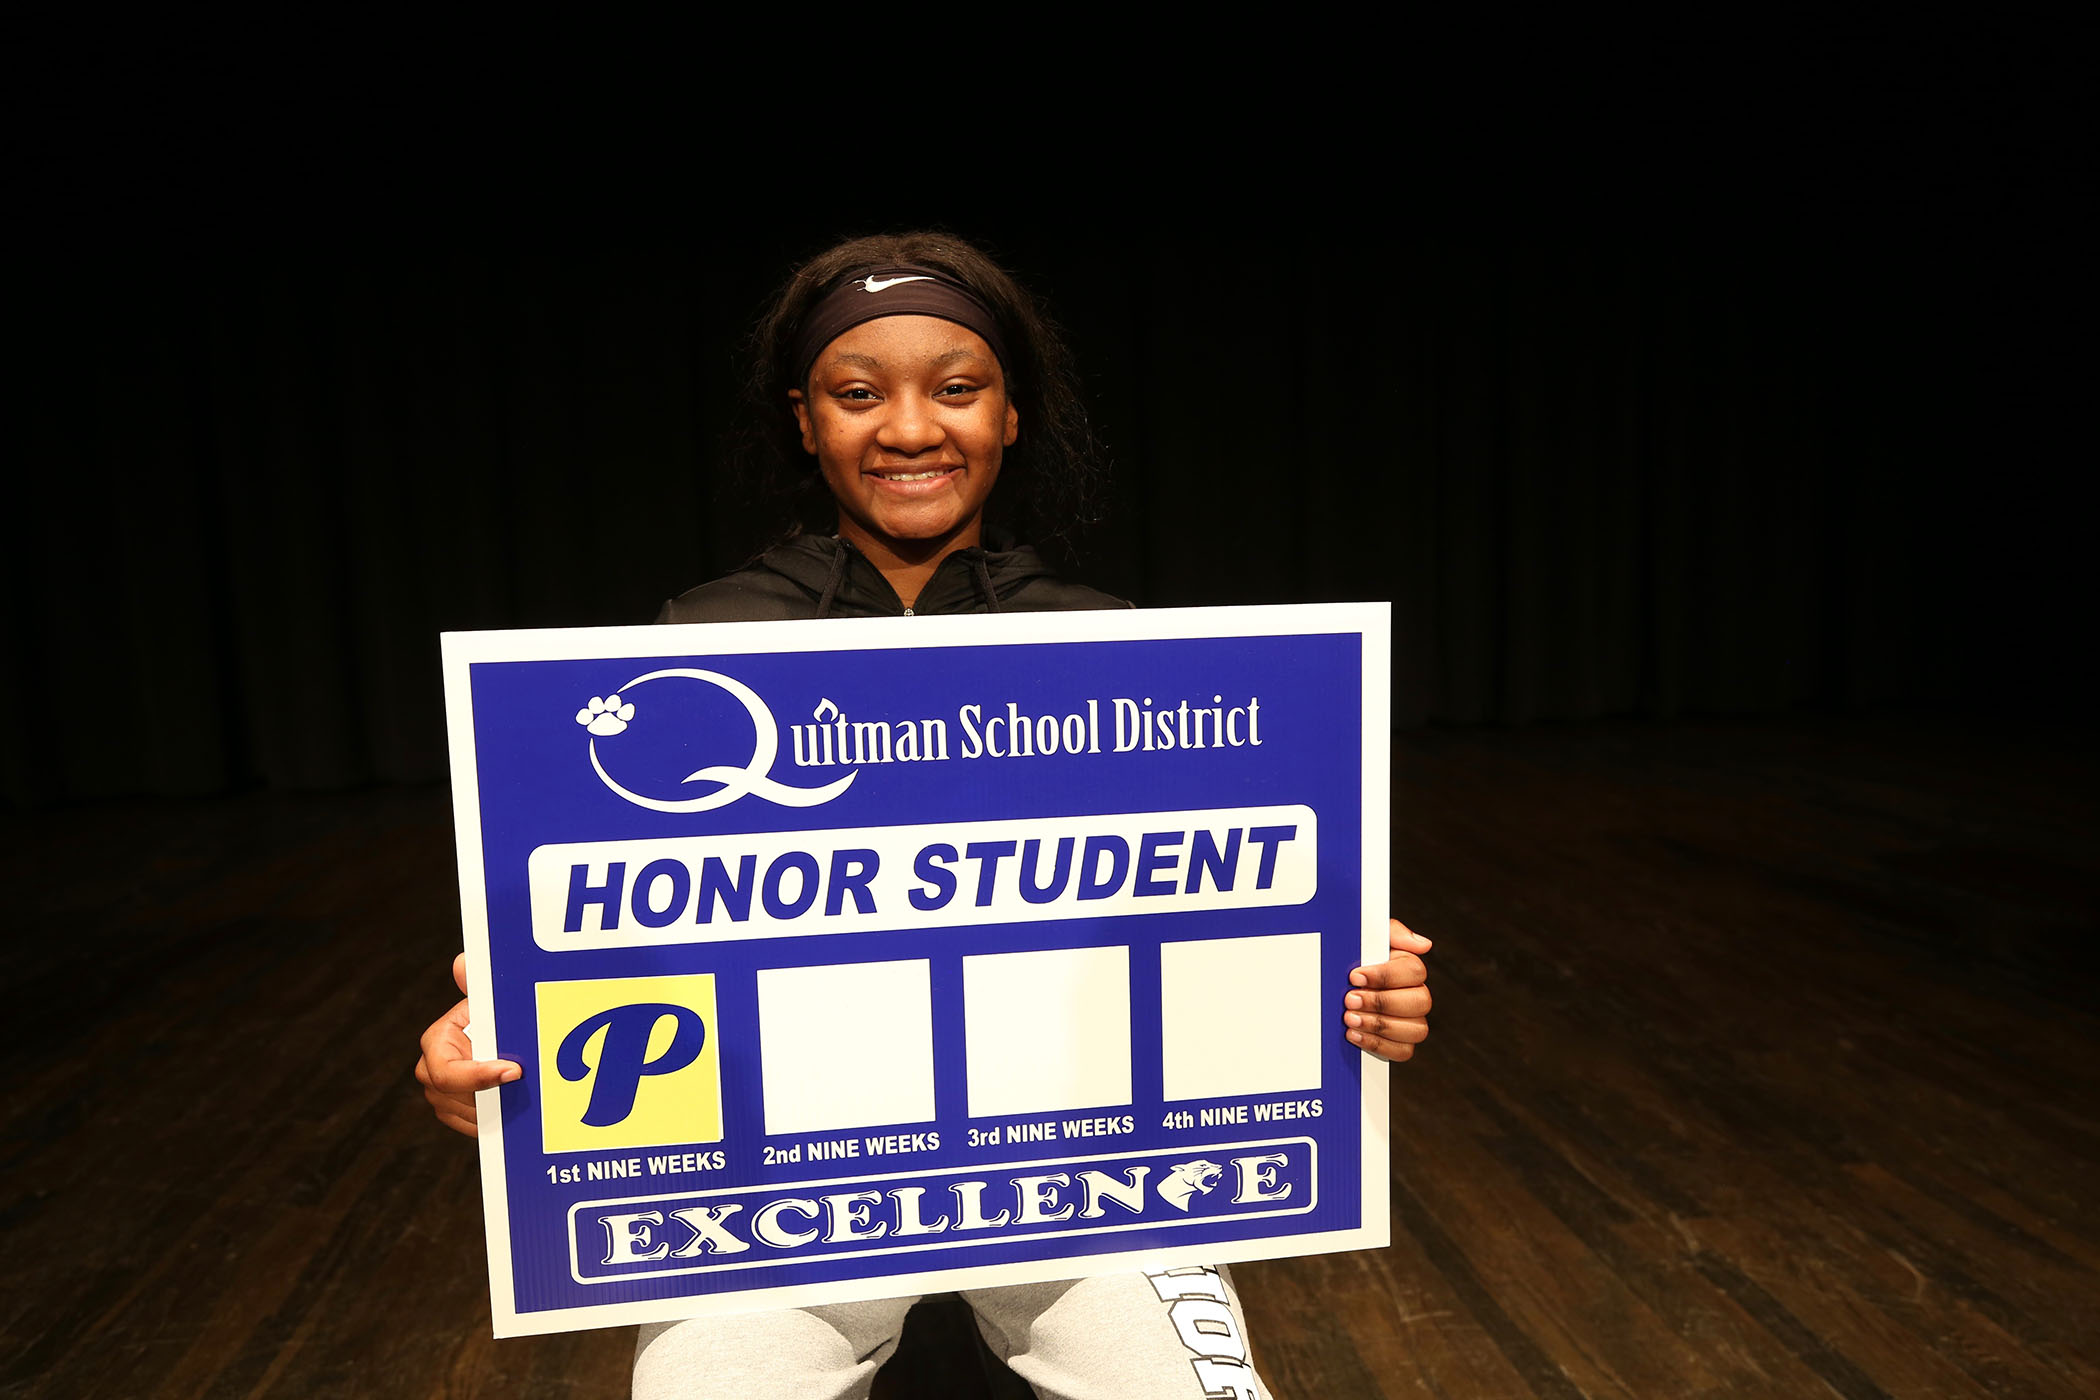 Raven holds a yard sign which announces that she is an honor student.